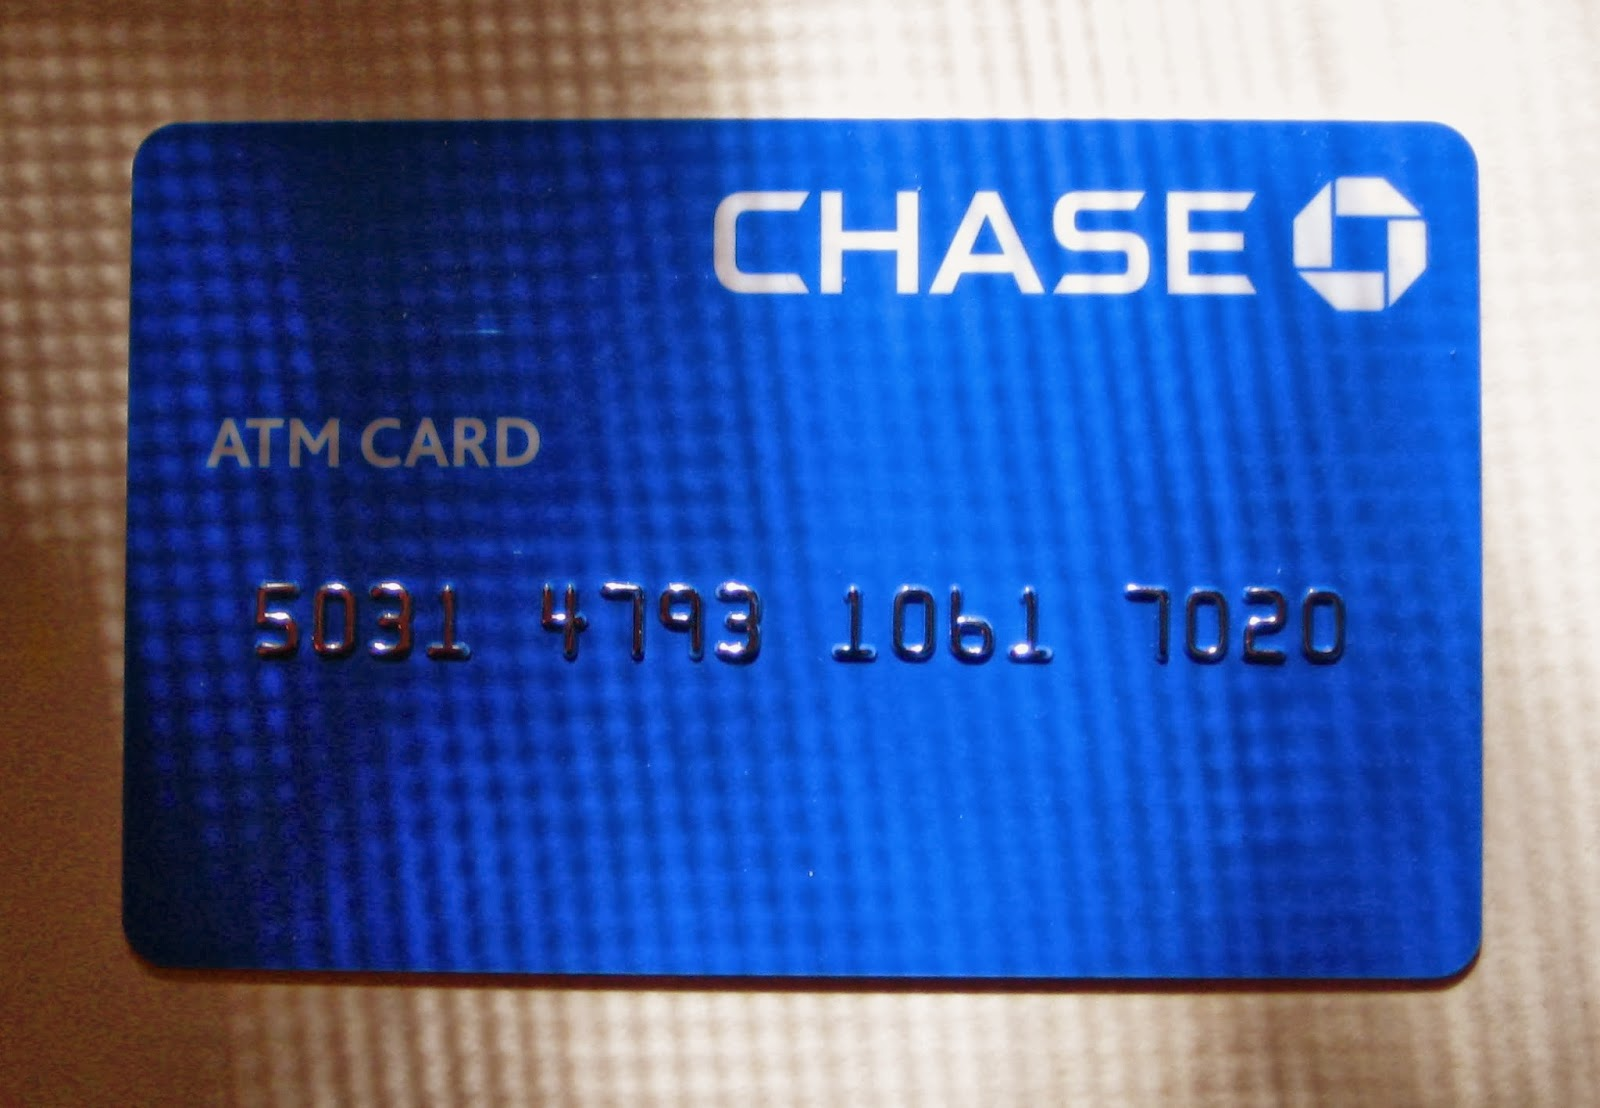 Bank Hacked Hacking Cyber Security - Map of chase bank locations in us